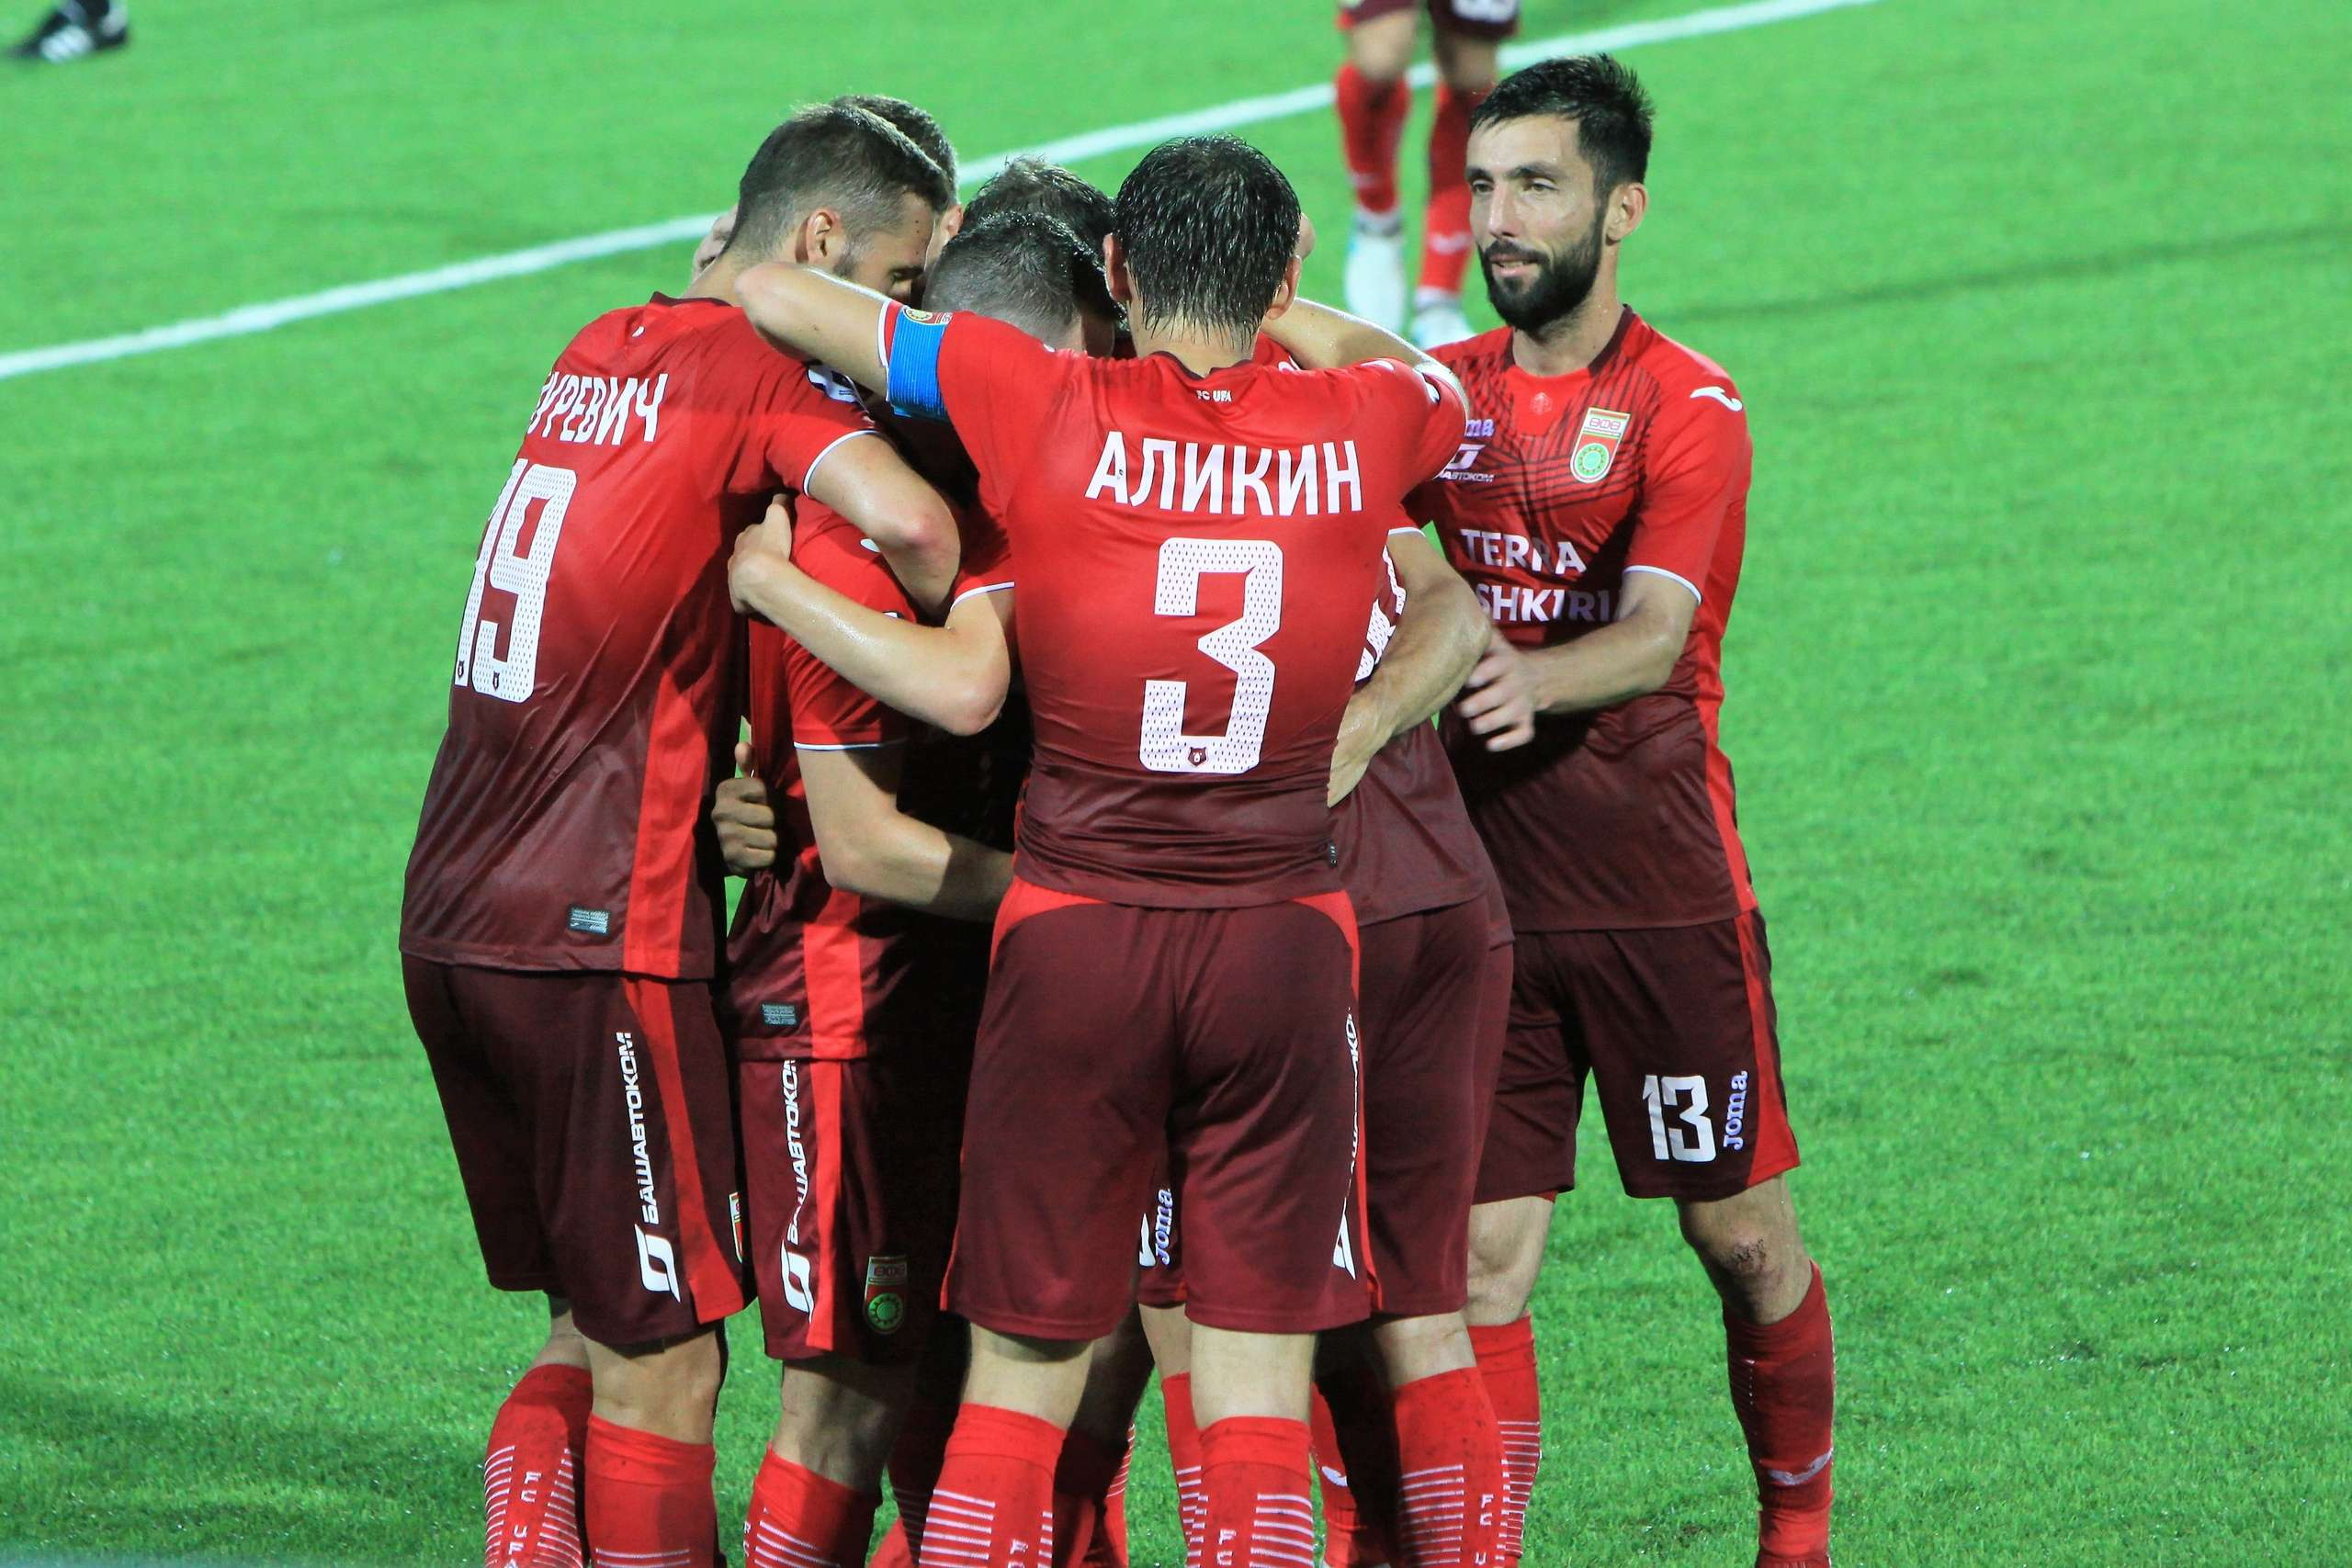 Baby Showers in the UK - It's Official